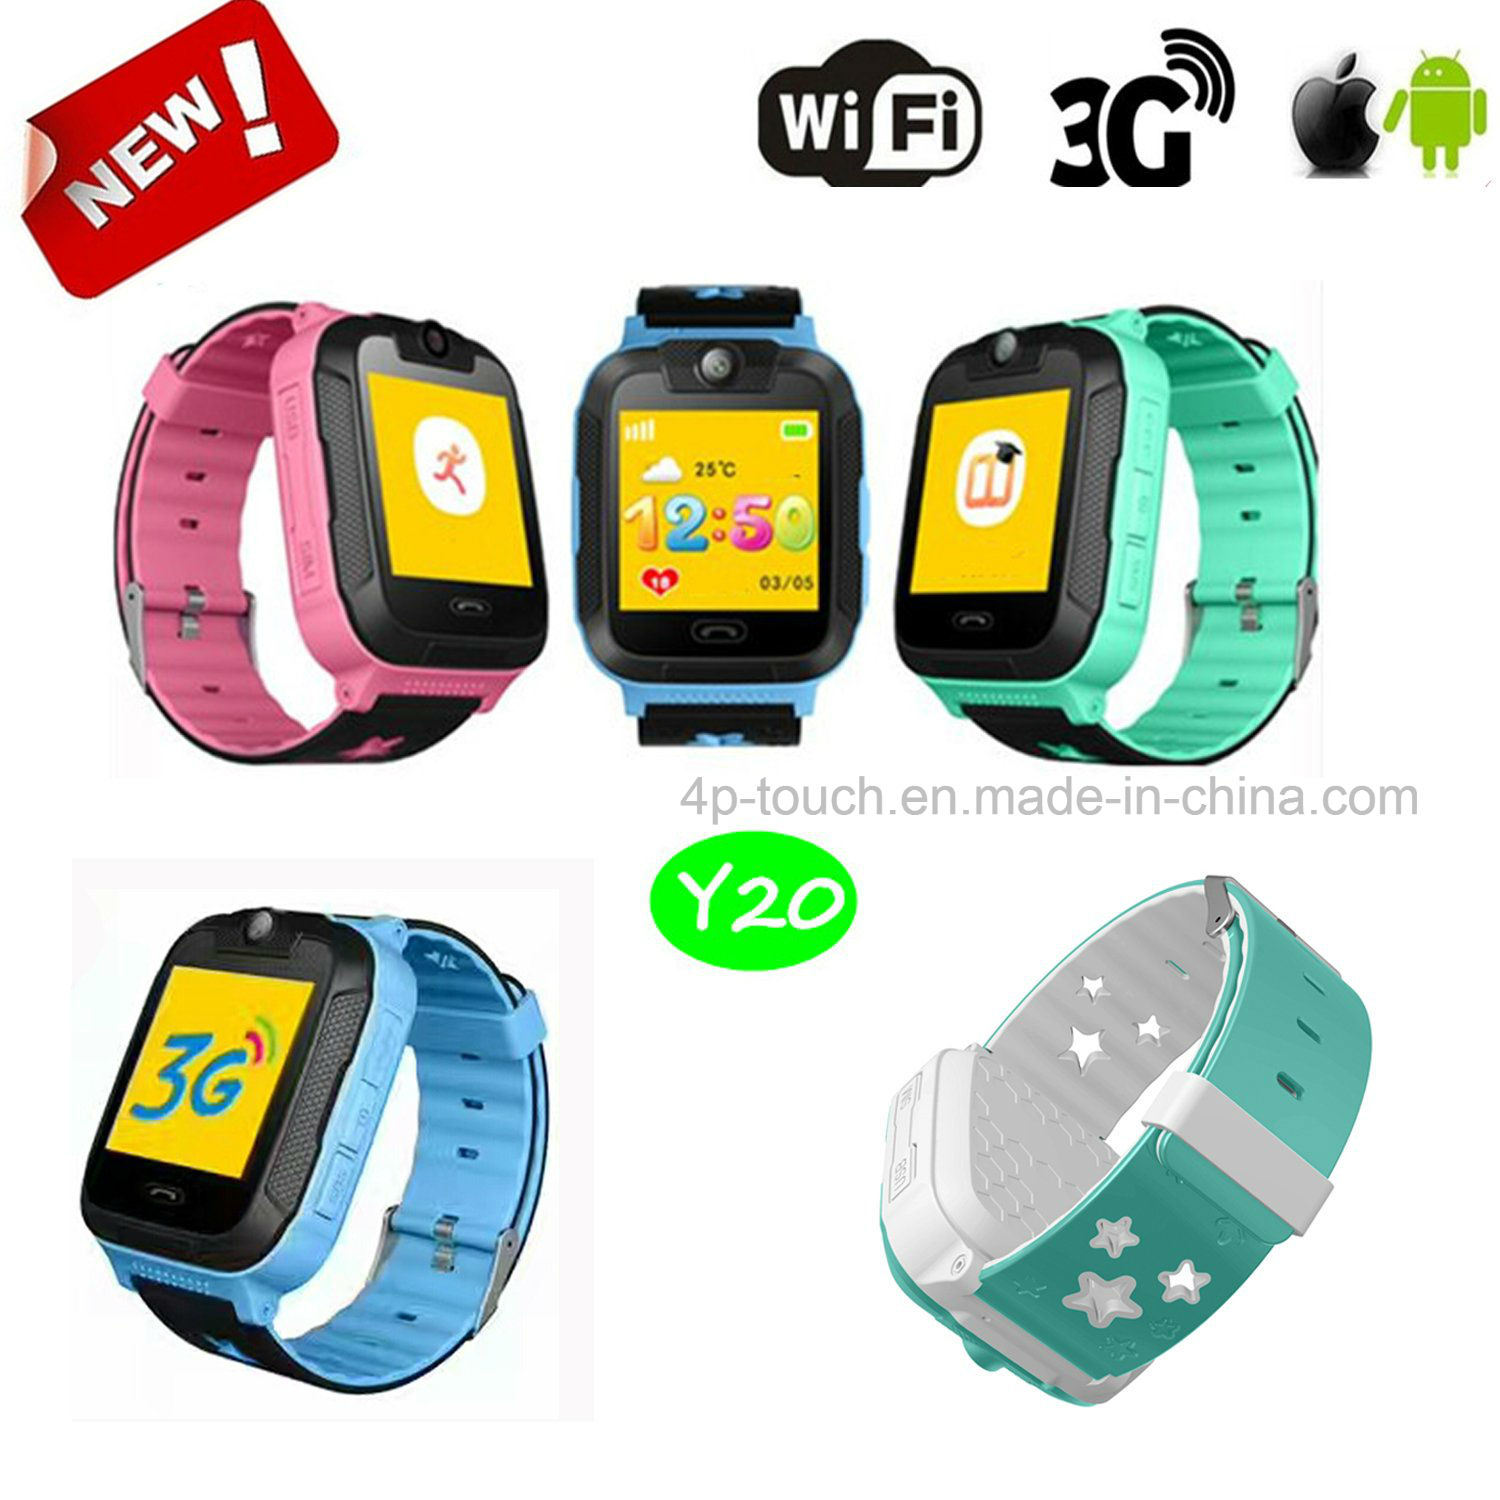 New Developed 3G Kids GPS Tracker Watch with Camera 3.0 Y20